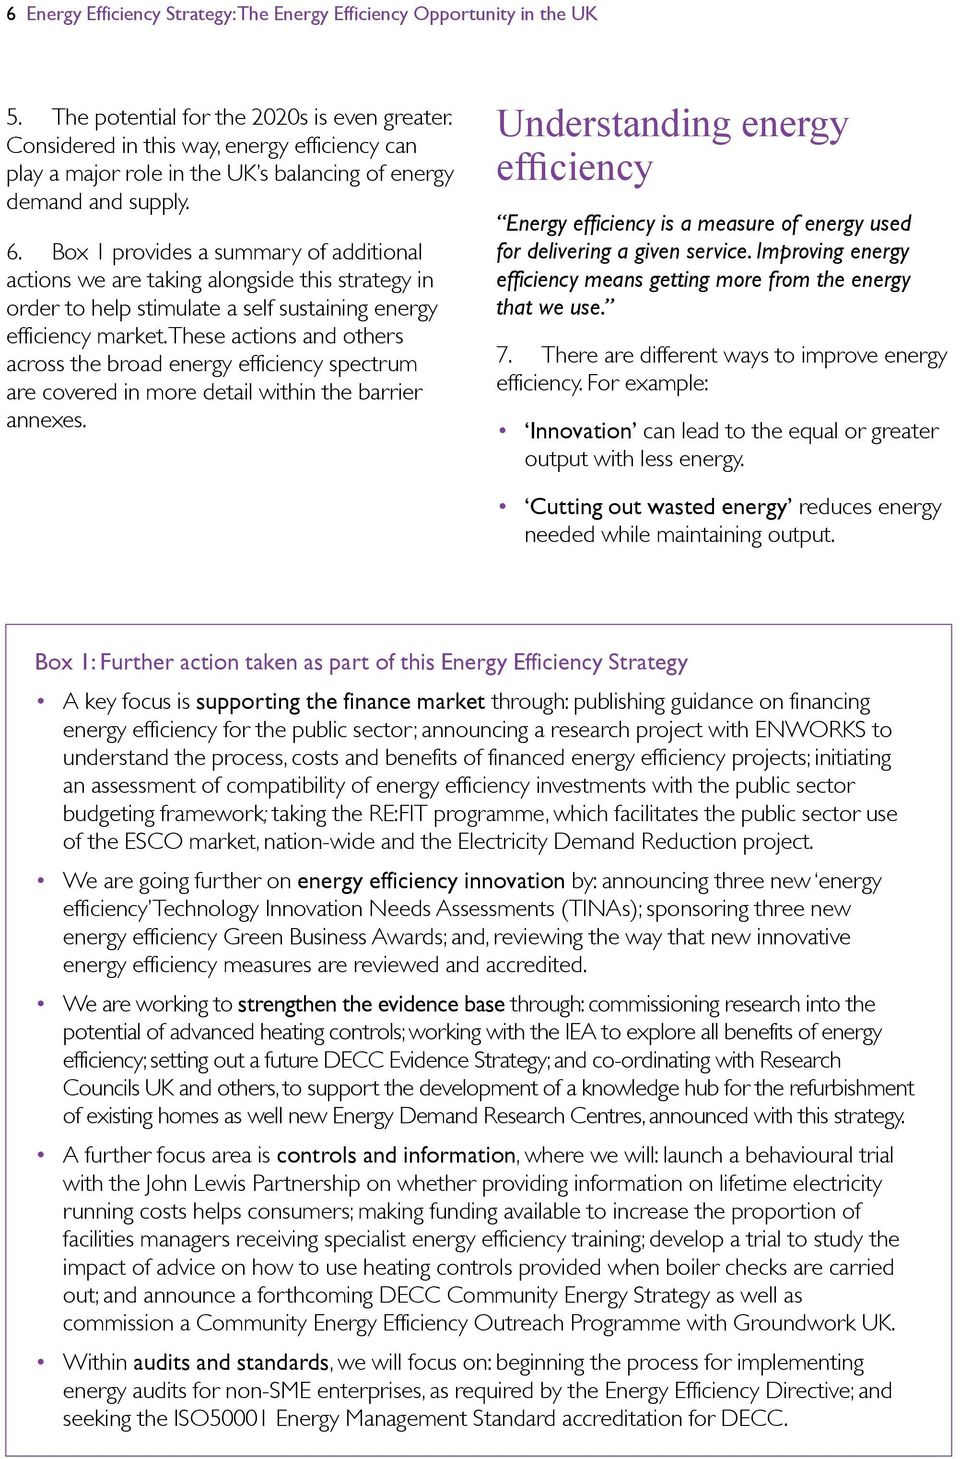 Box 1 provides a summary of additional actions we are taking alongside this strategy in order to help stimulate a self sustaining energy efficiency market.